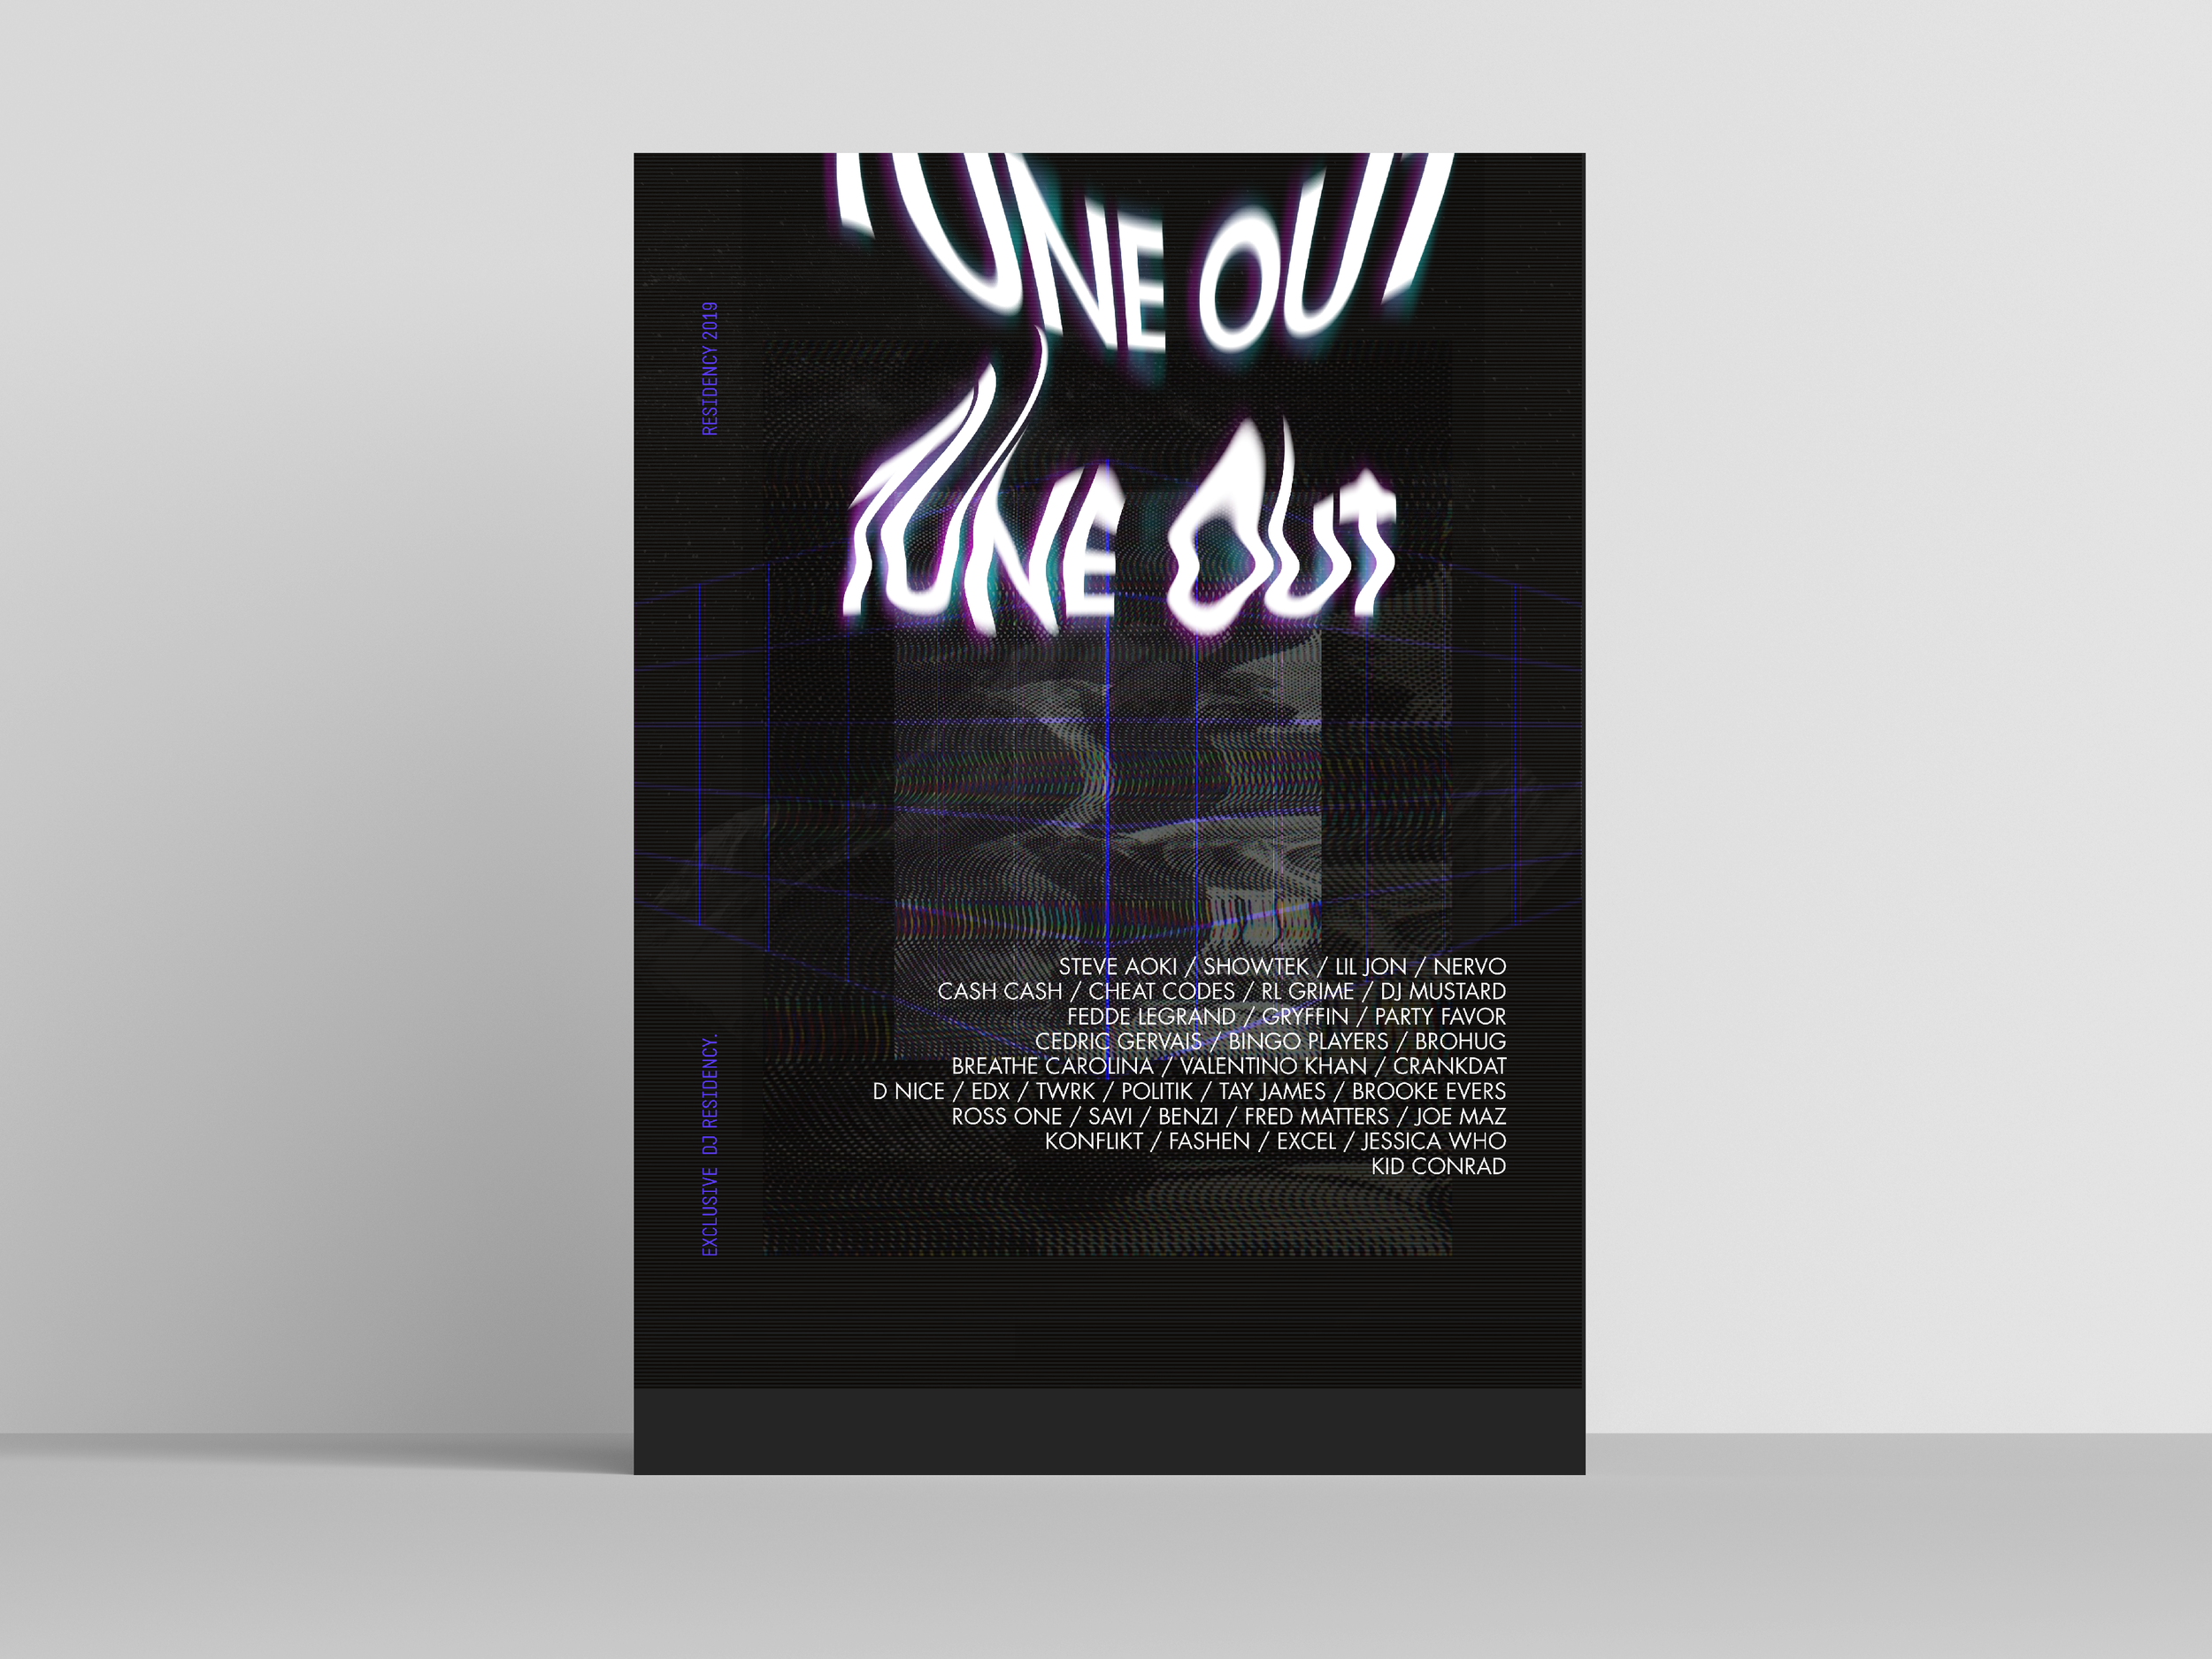 tune out line up Mockup.png